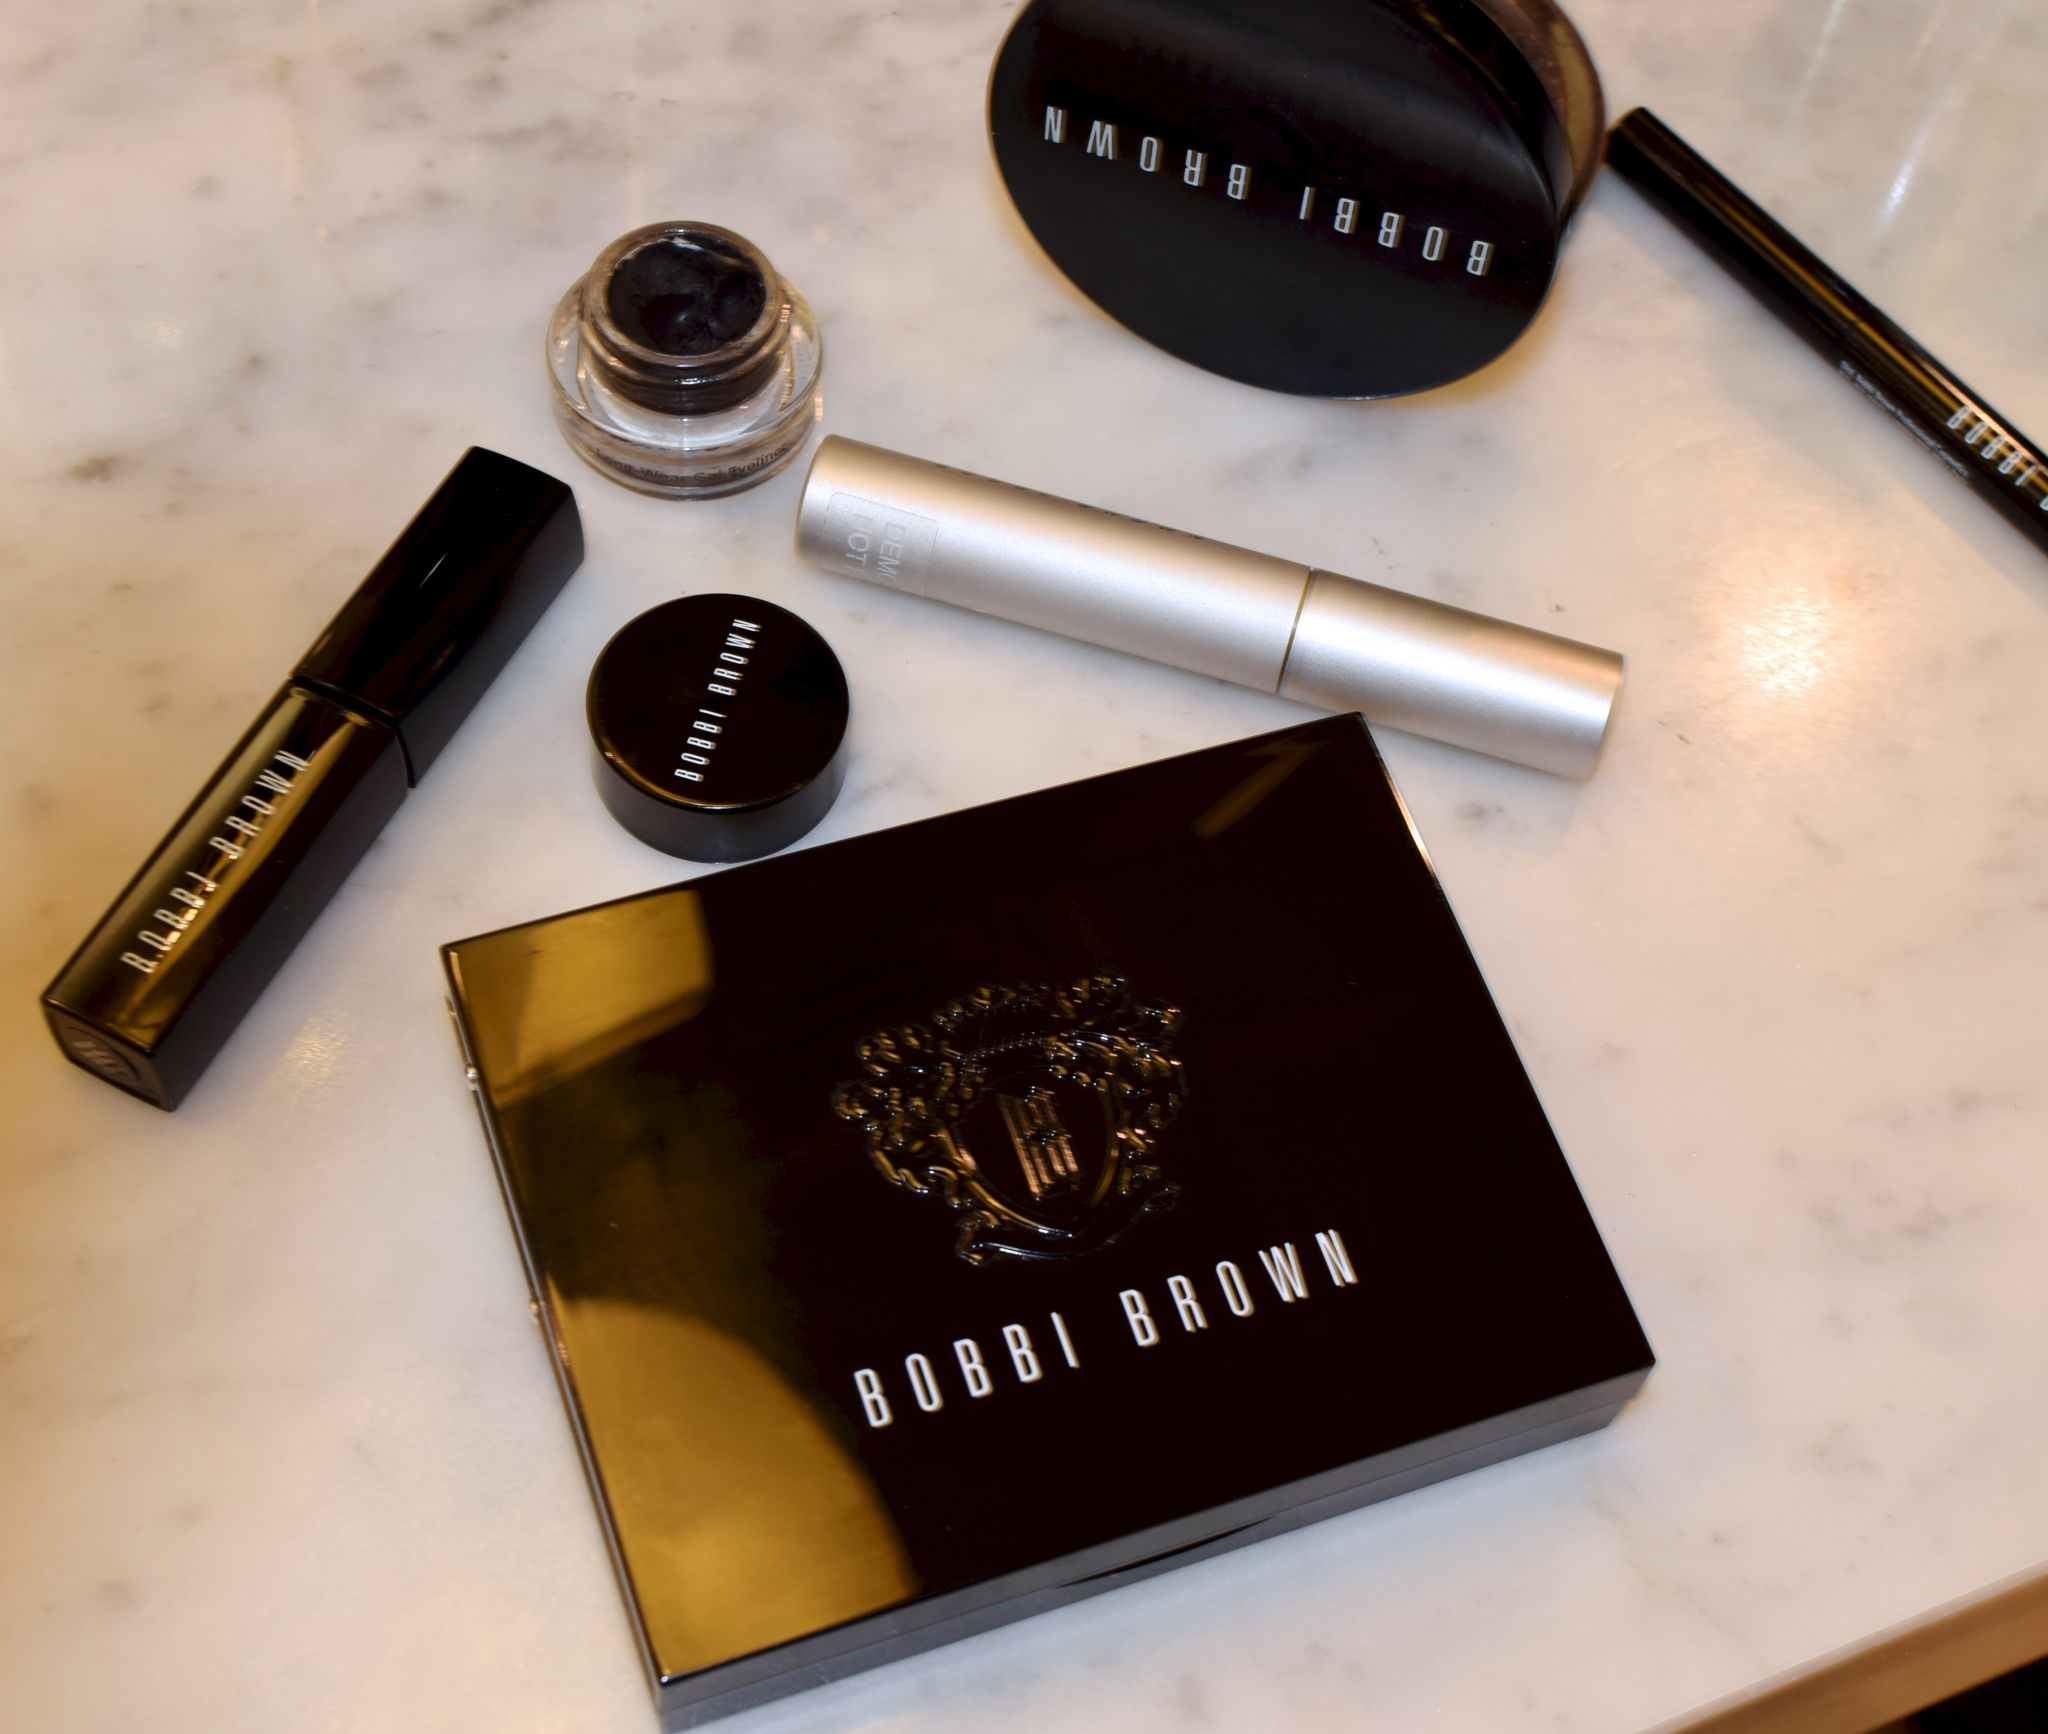 Bobbi Brown Ultimate Makeup Lesson 6